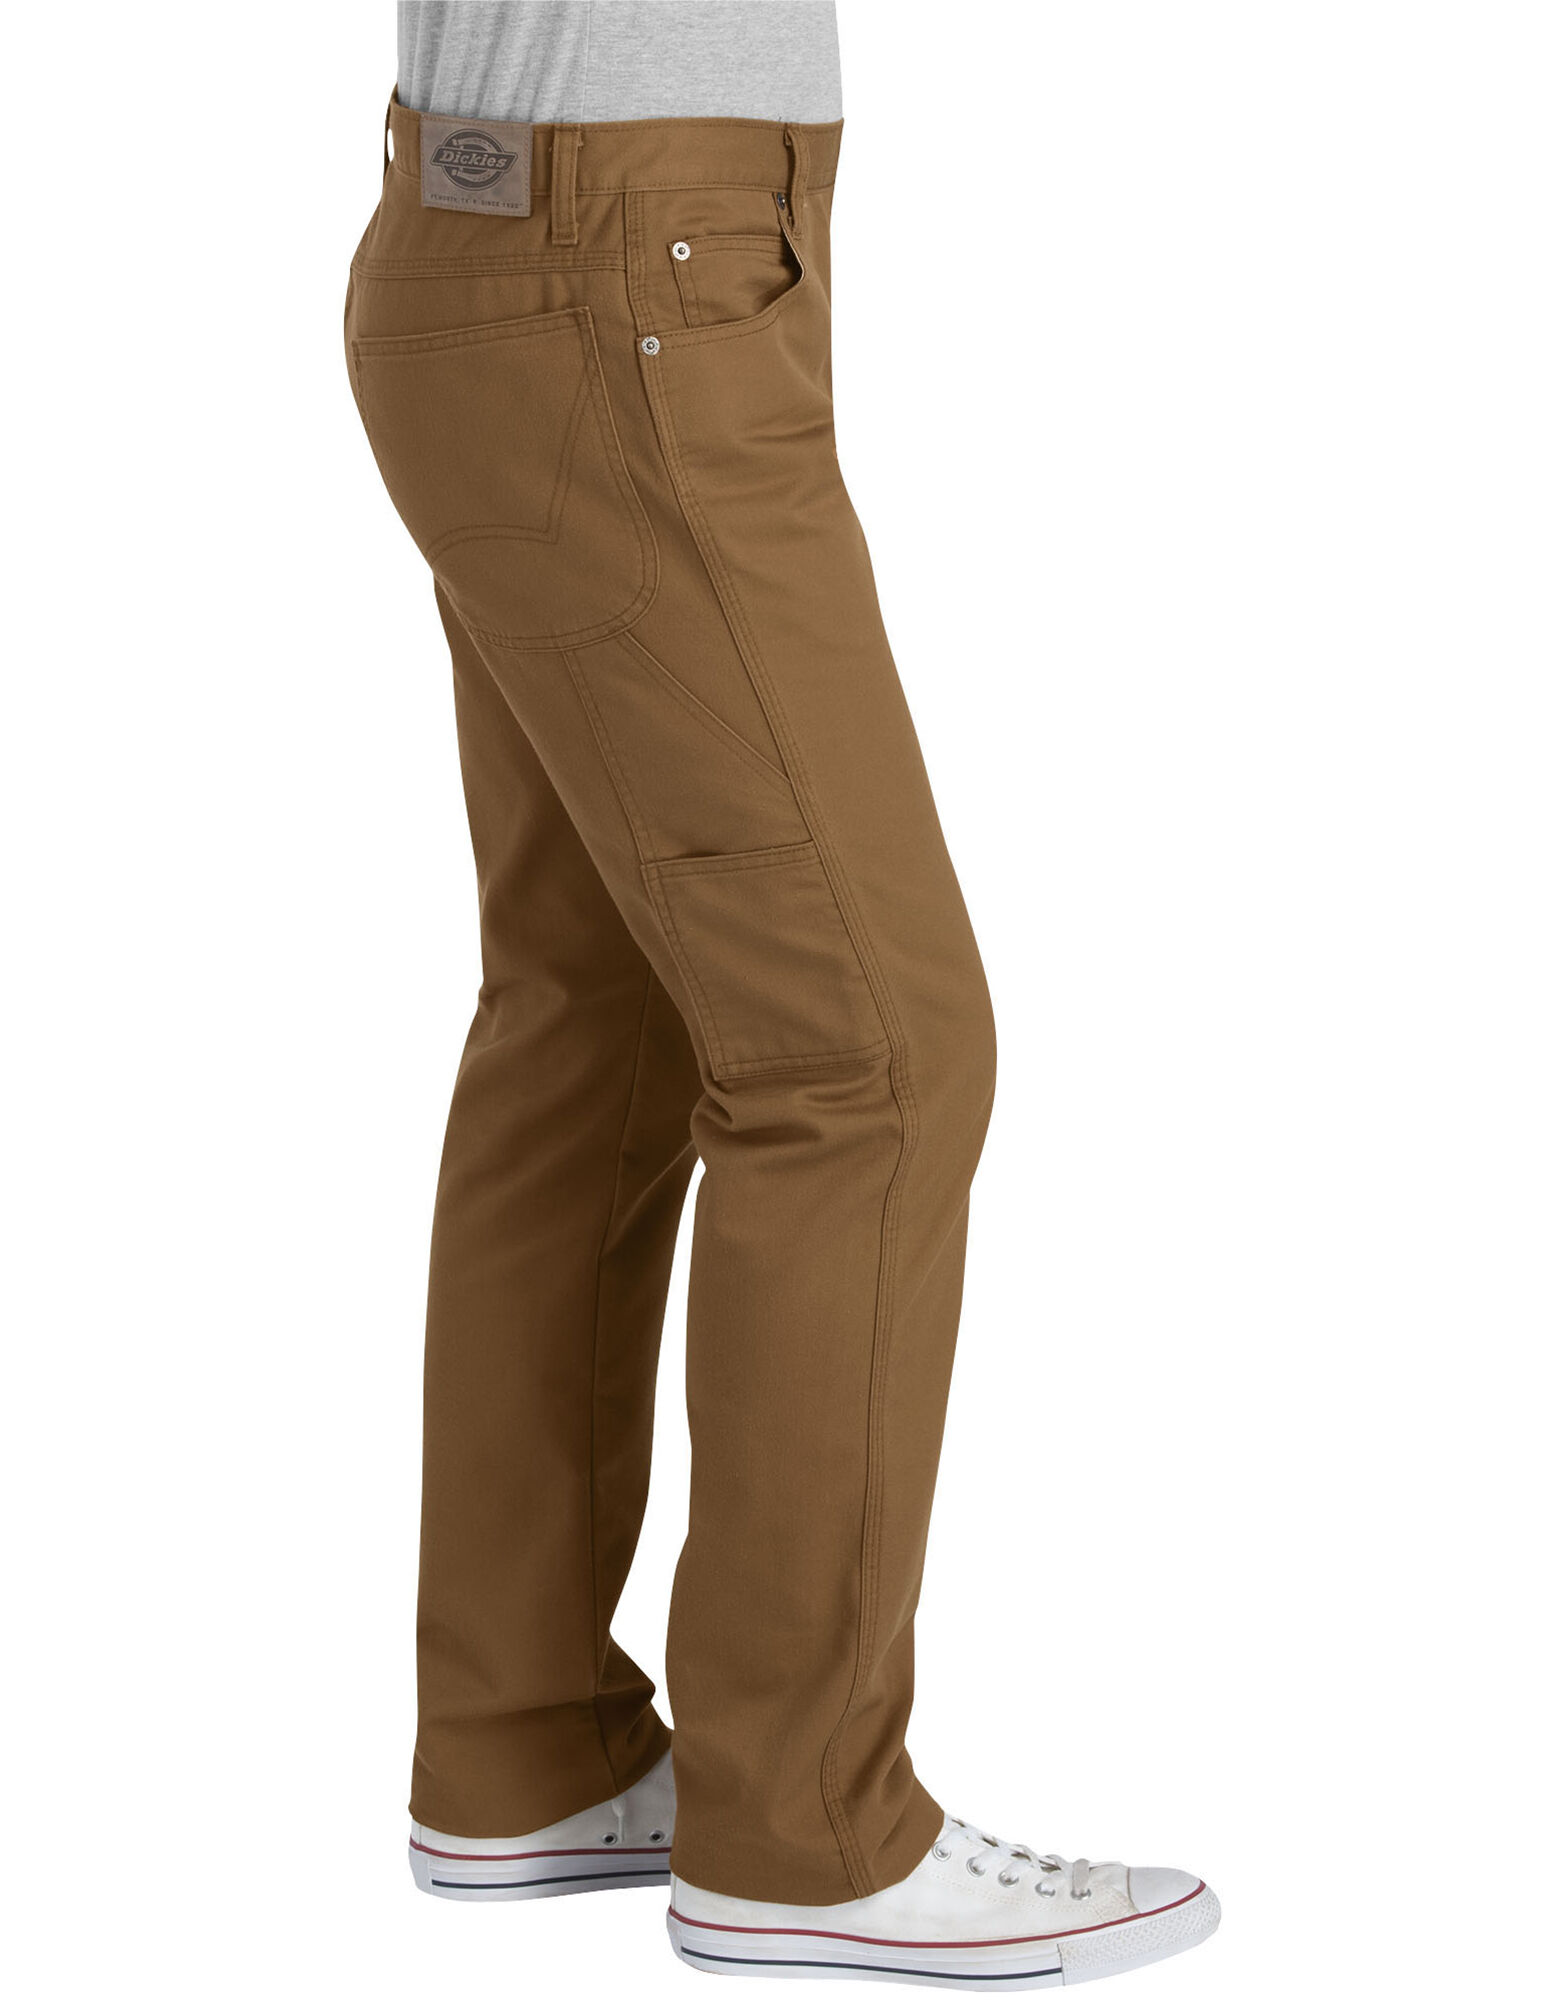 Zip-Off Legs convert the pants to shorts with ease. SHORTS INSEAM - S SPECIEN Adult Performance Sweatpants - Zippers Pockets & Zipper Legs Ends: Plus Width for Size XL 2XL & 3XL. by SPECIEN. $ $ 18 out of 5 stars 8. Product Features 9-Inch Zippers Legs Ends Adult Performance Sweat Pants.